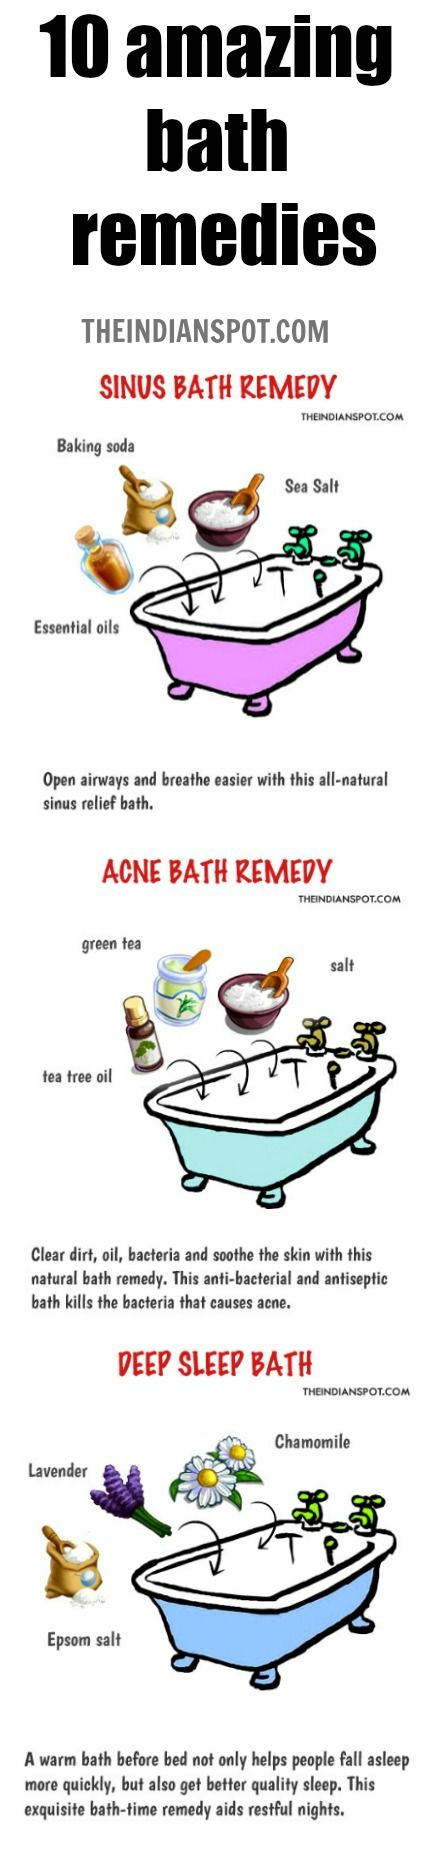 Try these 10 amazing bath remedies for acne, sinuses and more!